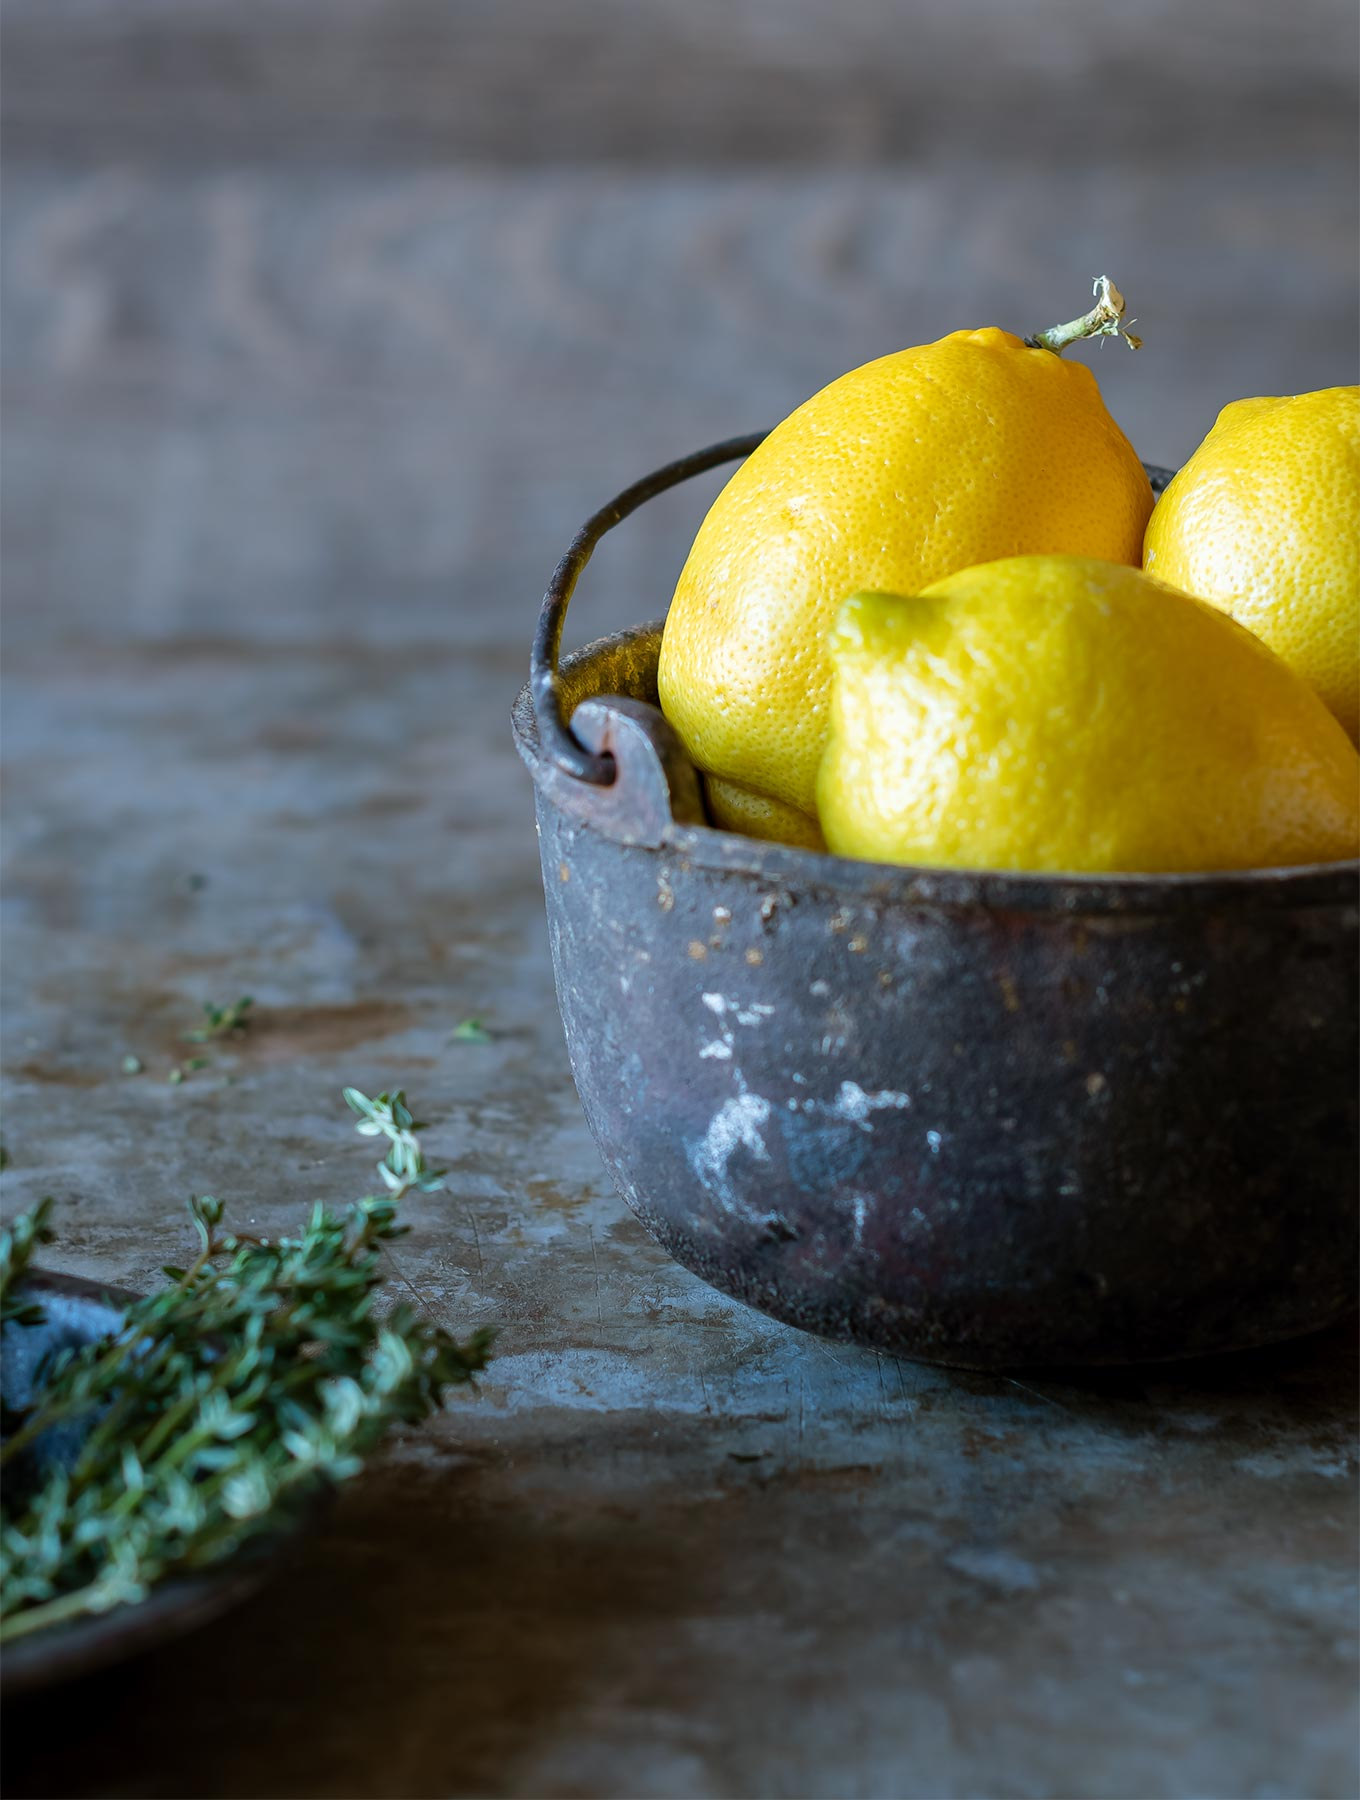 Bowl of lemons with time